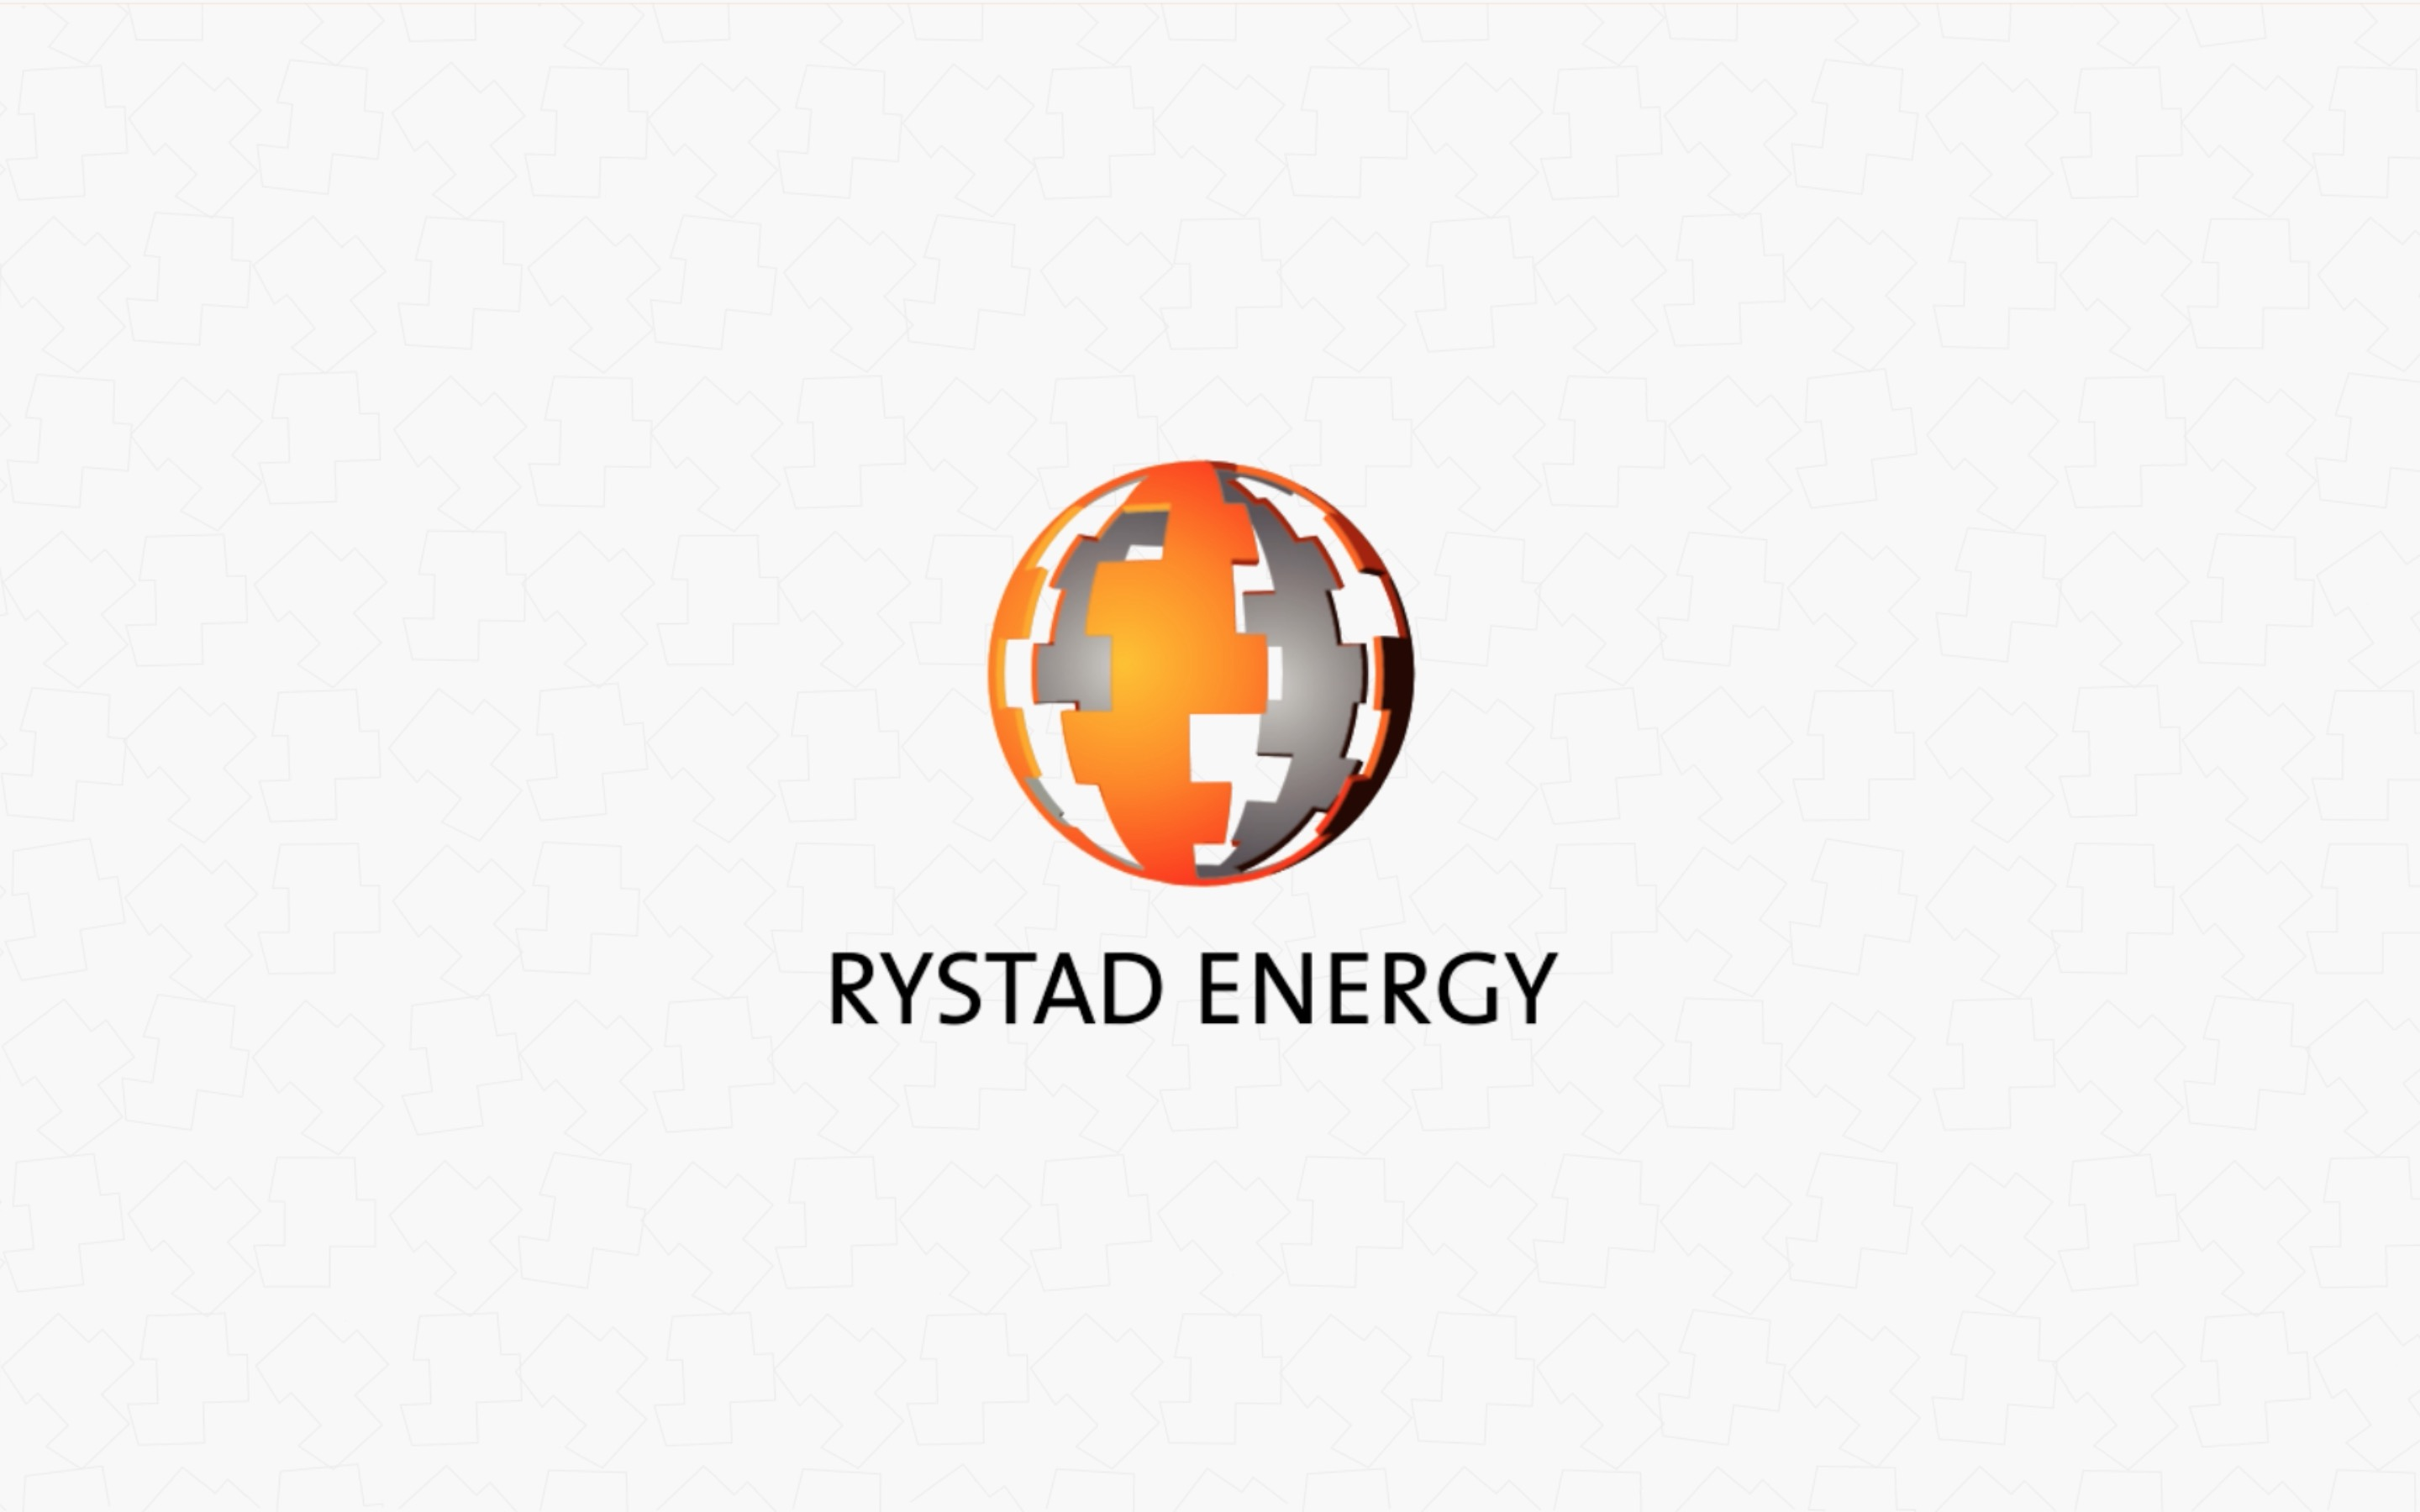 Storisell proudly delivers an international video campaign consisting of ten explainer videos to oil and gas company Rystad Energy. Rystad Energy offers global and regional tools tailored for in-depth analysis of the upstream, oilfield service, energy markets, and renewable energy industry. This explainer video campaign focused on designing ten videos for the client's products. Products ranging from databases and analytics giving a complete overview of the global oil and gas industry, and much more. We started the project together with Rystad Energy's team in Oslo, Norway. For two days we meet with product owners and discussed the goal of the overall production. The result is a comprehensive video campaign with a business-to-business feel. Everything is designed based on Rystad Energy's graphic profile in order to reflect their brand. Learn more on our website: https://storisell.com/portfolio/rystad-energy/